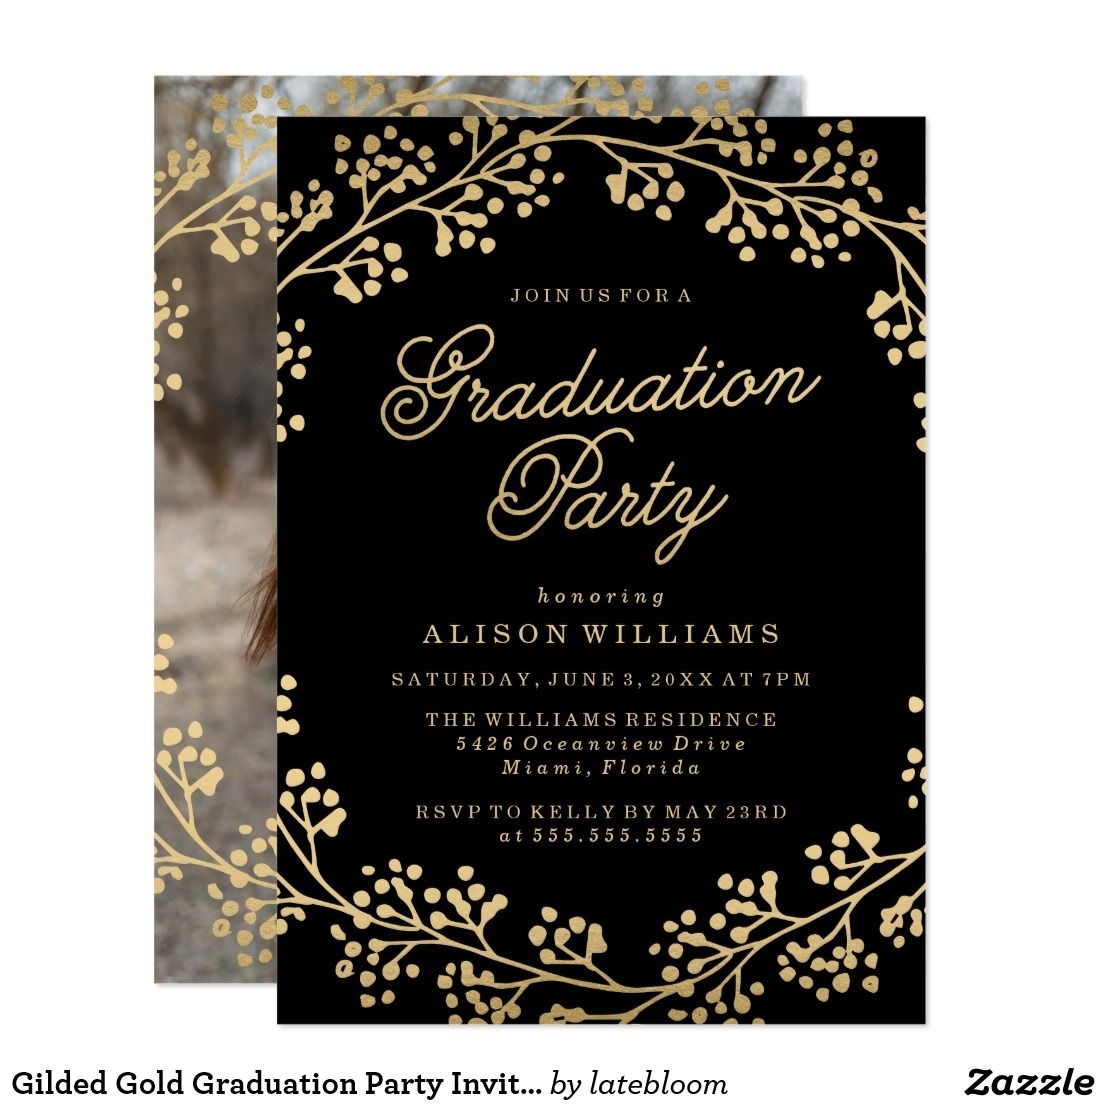 Gilded gold graduation party invitation graduation pinterest gilded gold graduation party invitation filmwisefo Gallery